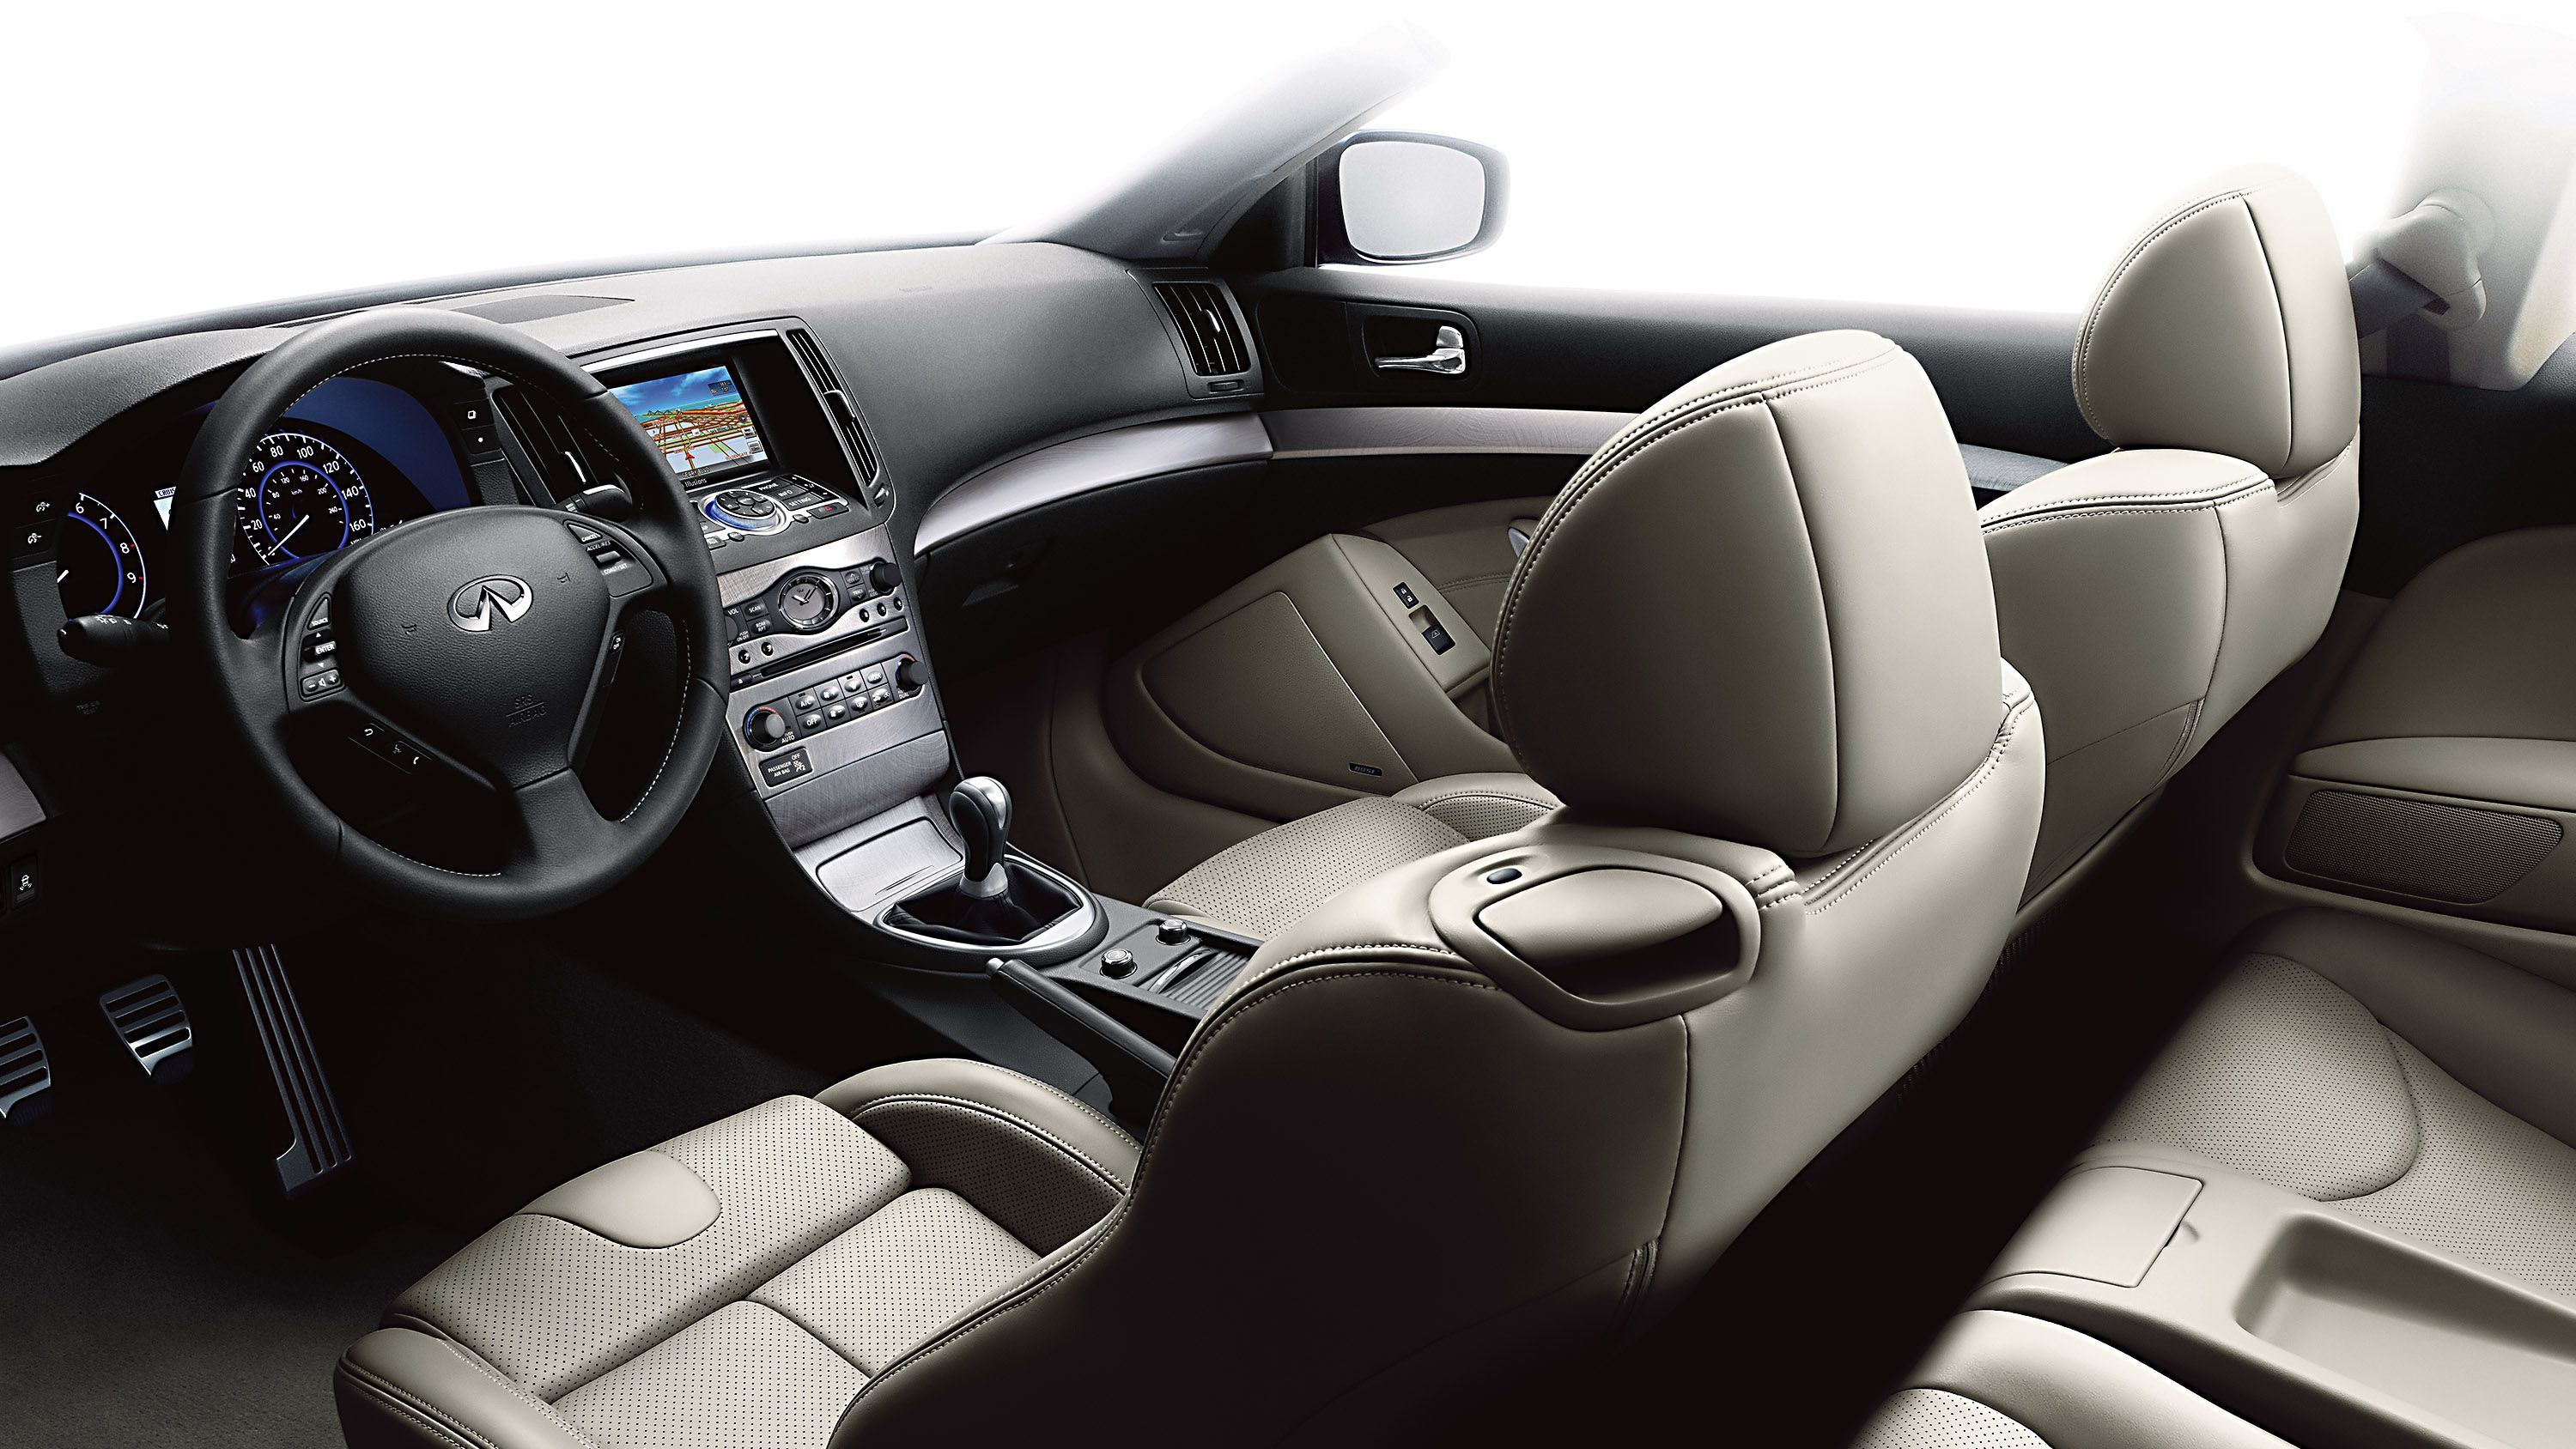 Explore The 2014 Infiniti Q60 Coupe From All Angles See Photos Choose Colors And Watch Videos Of Infiniti S High Performance Luxury S Infiniti Usa Coupe Sports Coupe